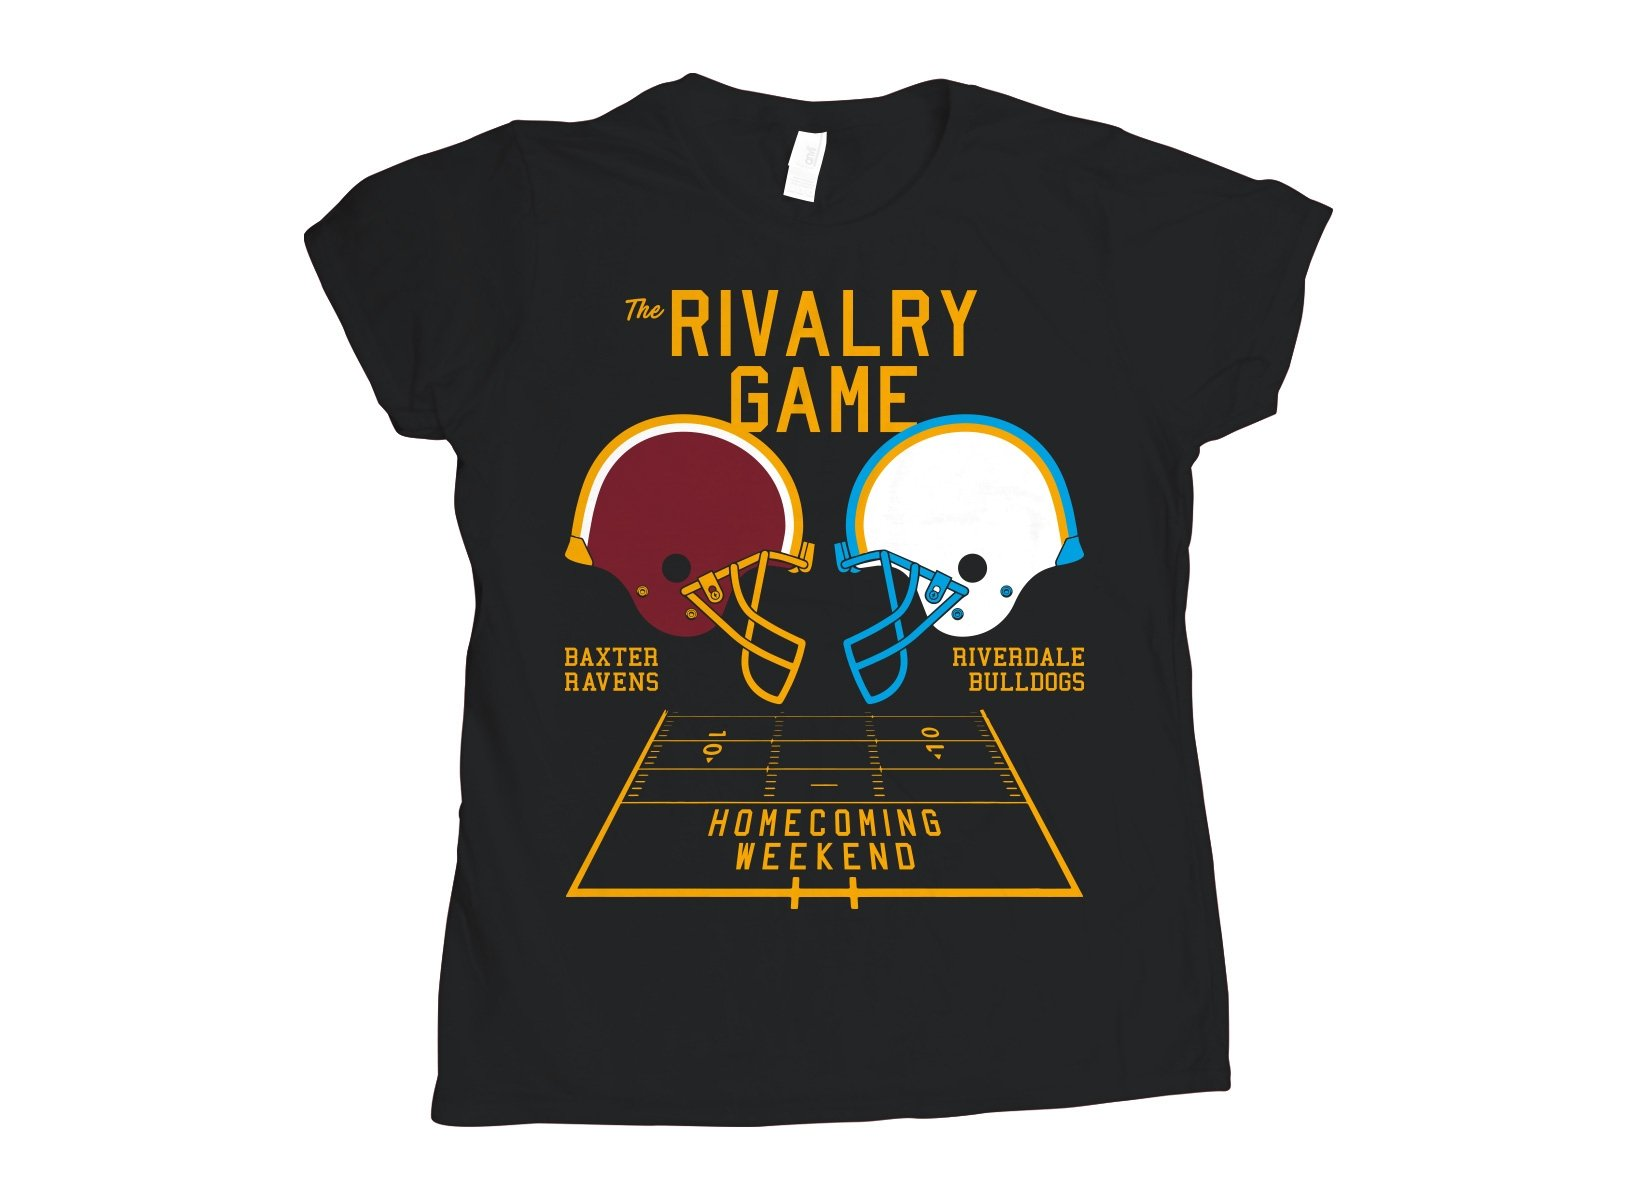 The Rivalry Game on Womens T-Shirt